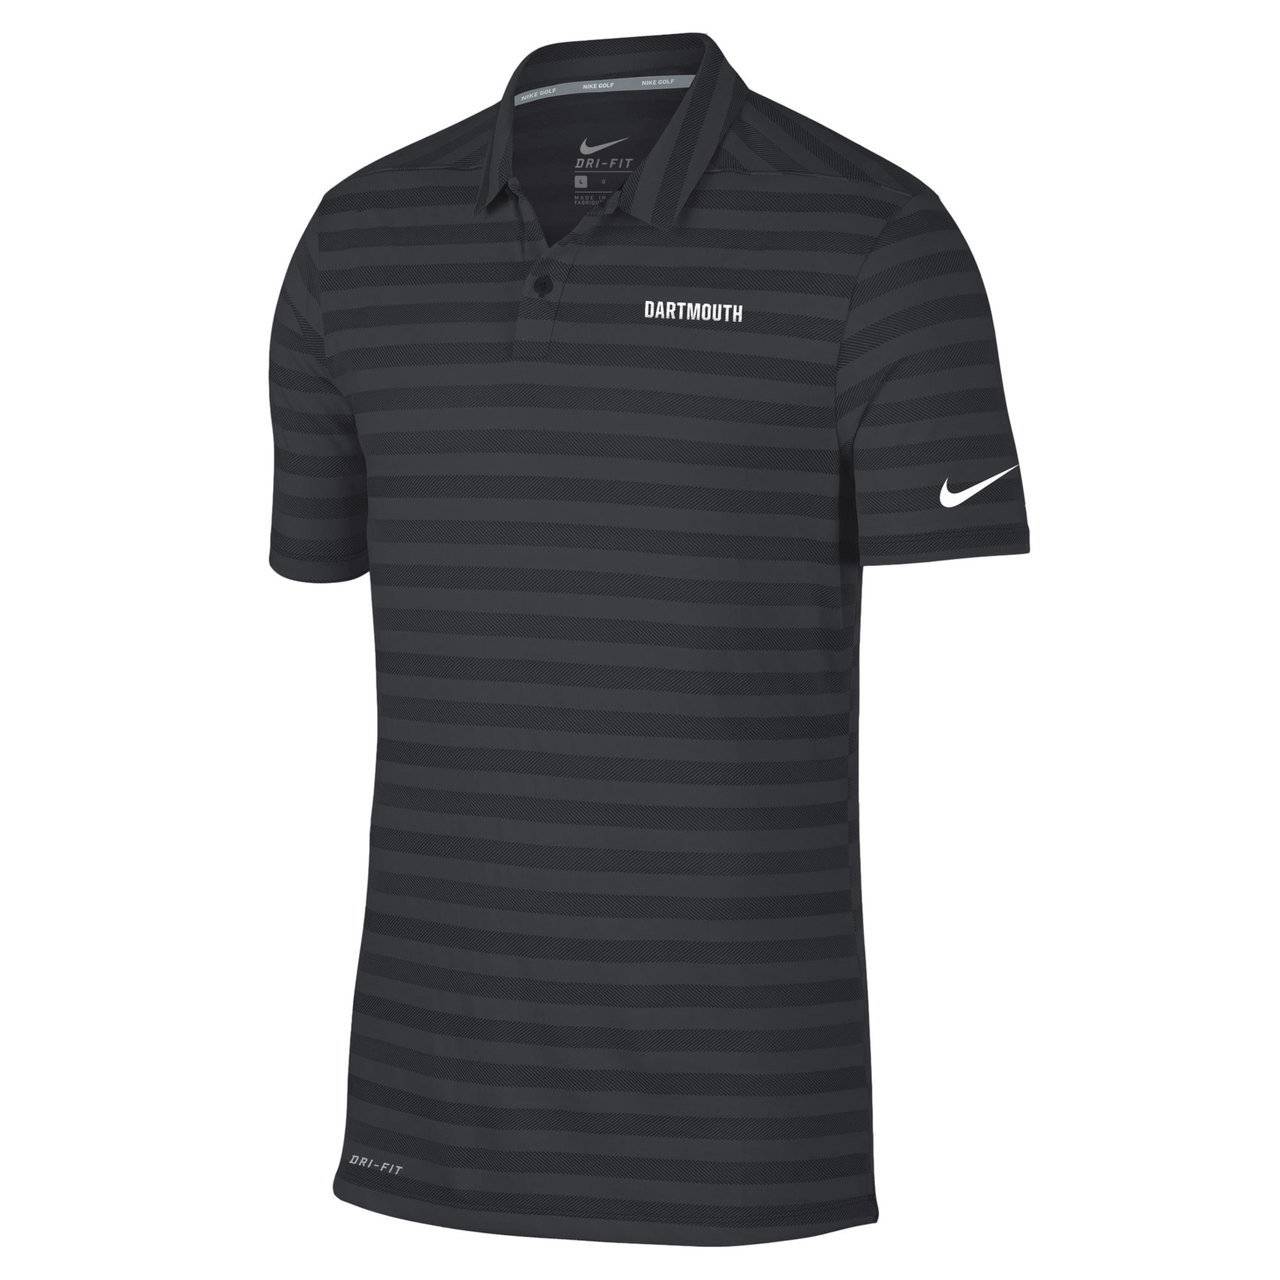 f295ed3b Men's grey and black Nike polo with 'Dartmouth' on the left in white and